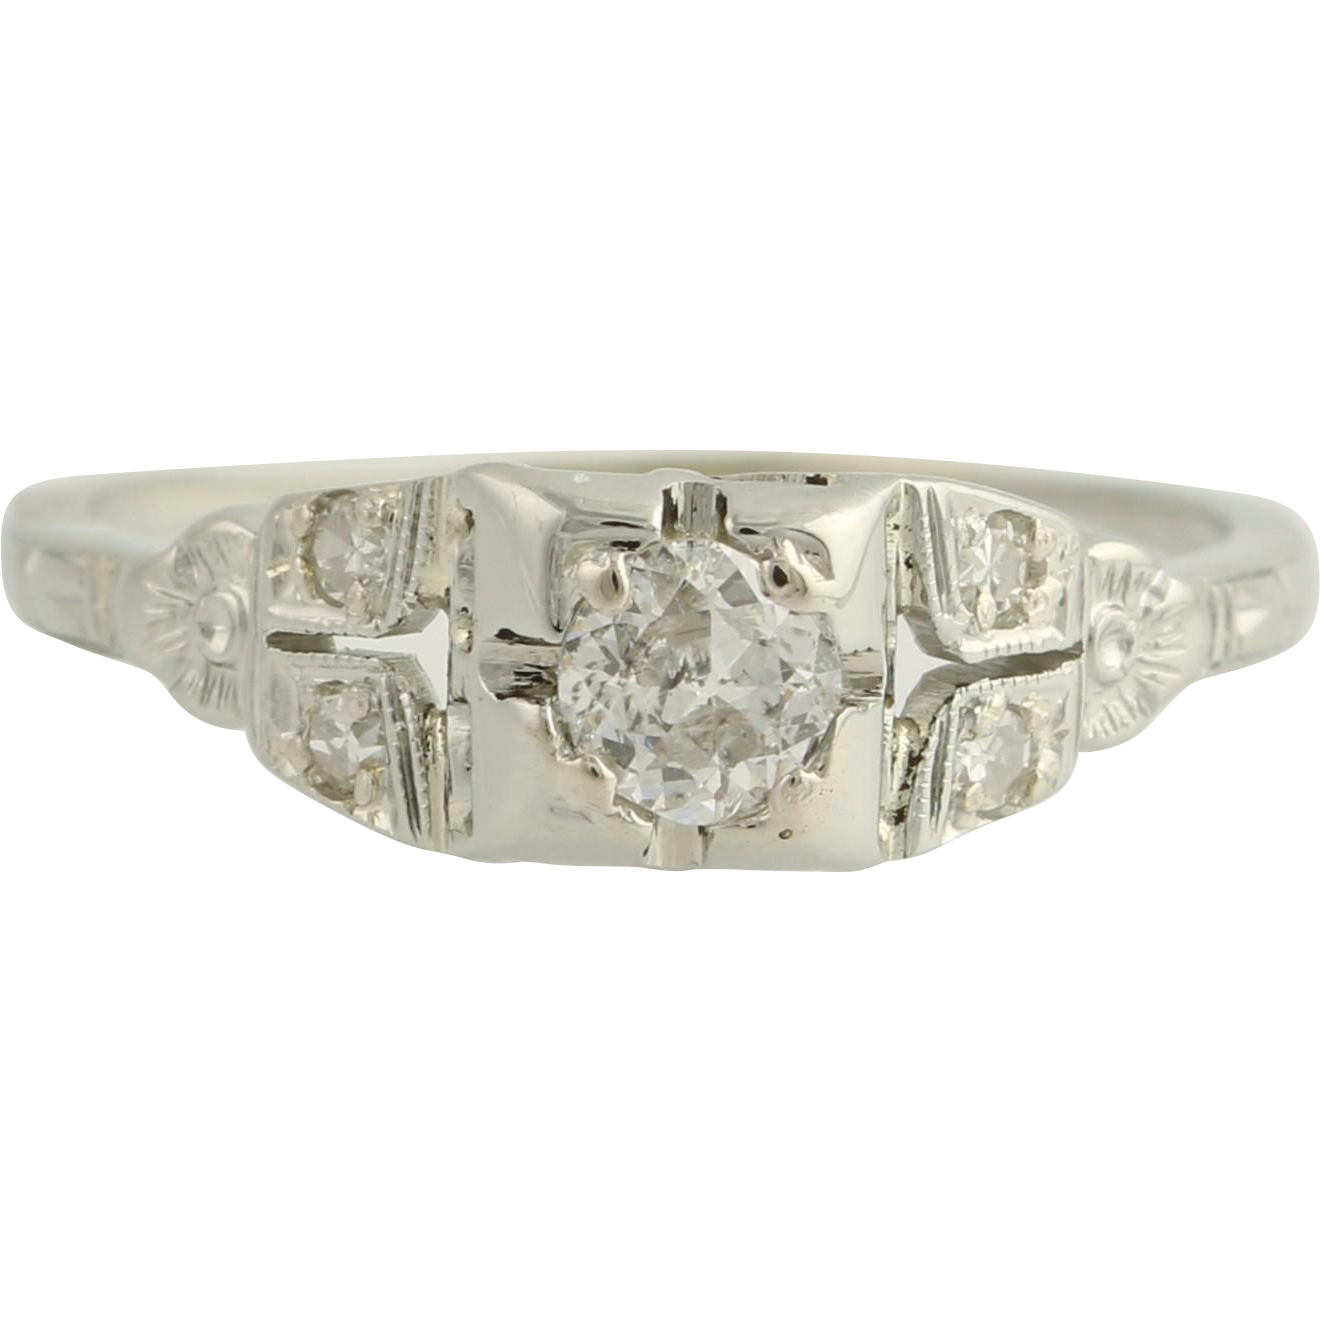 Art Deco Diamond Engagement Ring - 18k White Gold Size 6 3/4 Genuine .33ctw Unique Engagement Ring